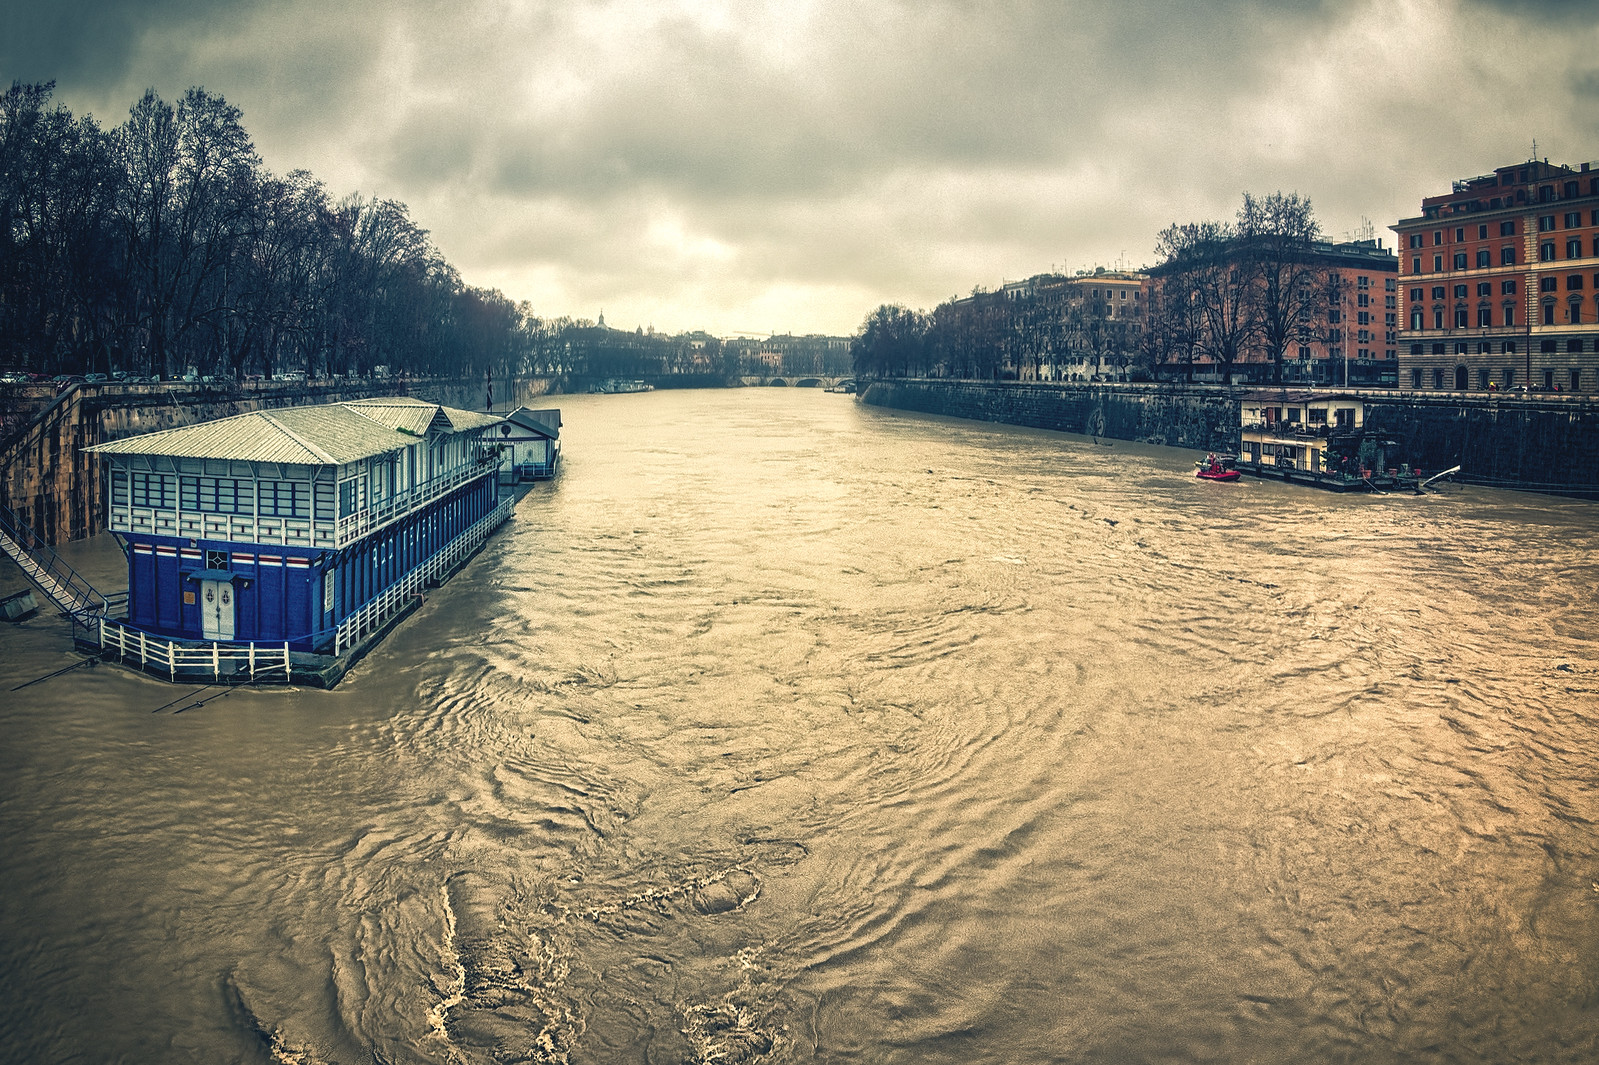 Flooding of the Tiber River Rome Italy